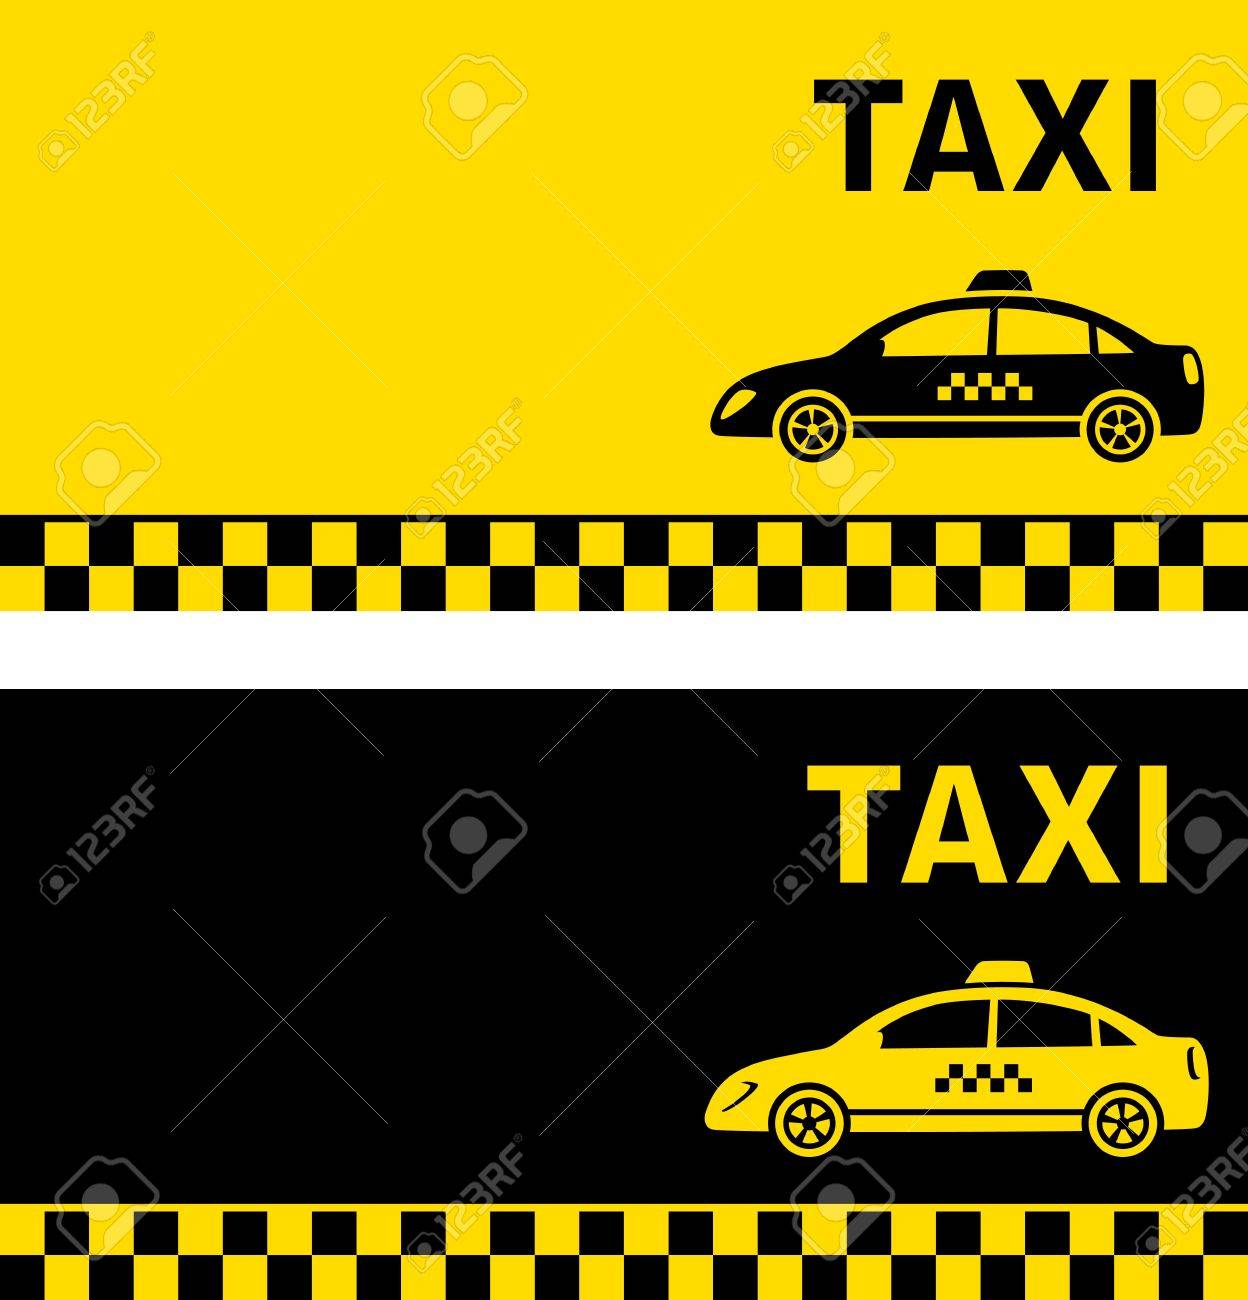 Black And Yellow Taxi Business Card With Taxi Image Royalty Free